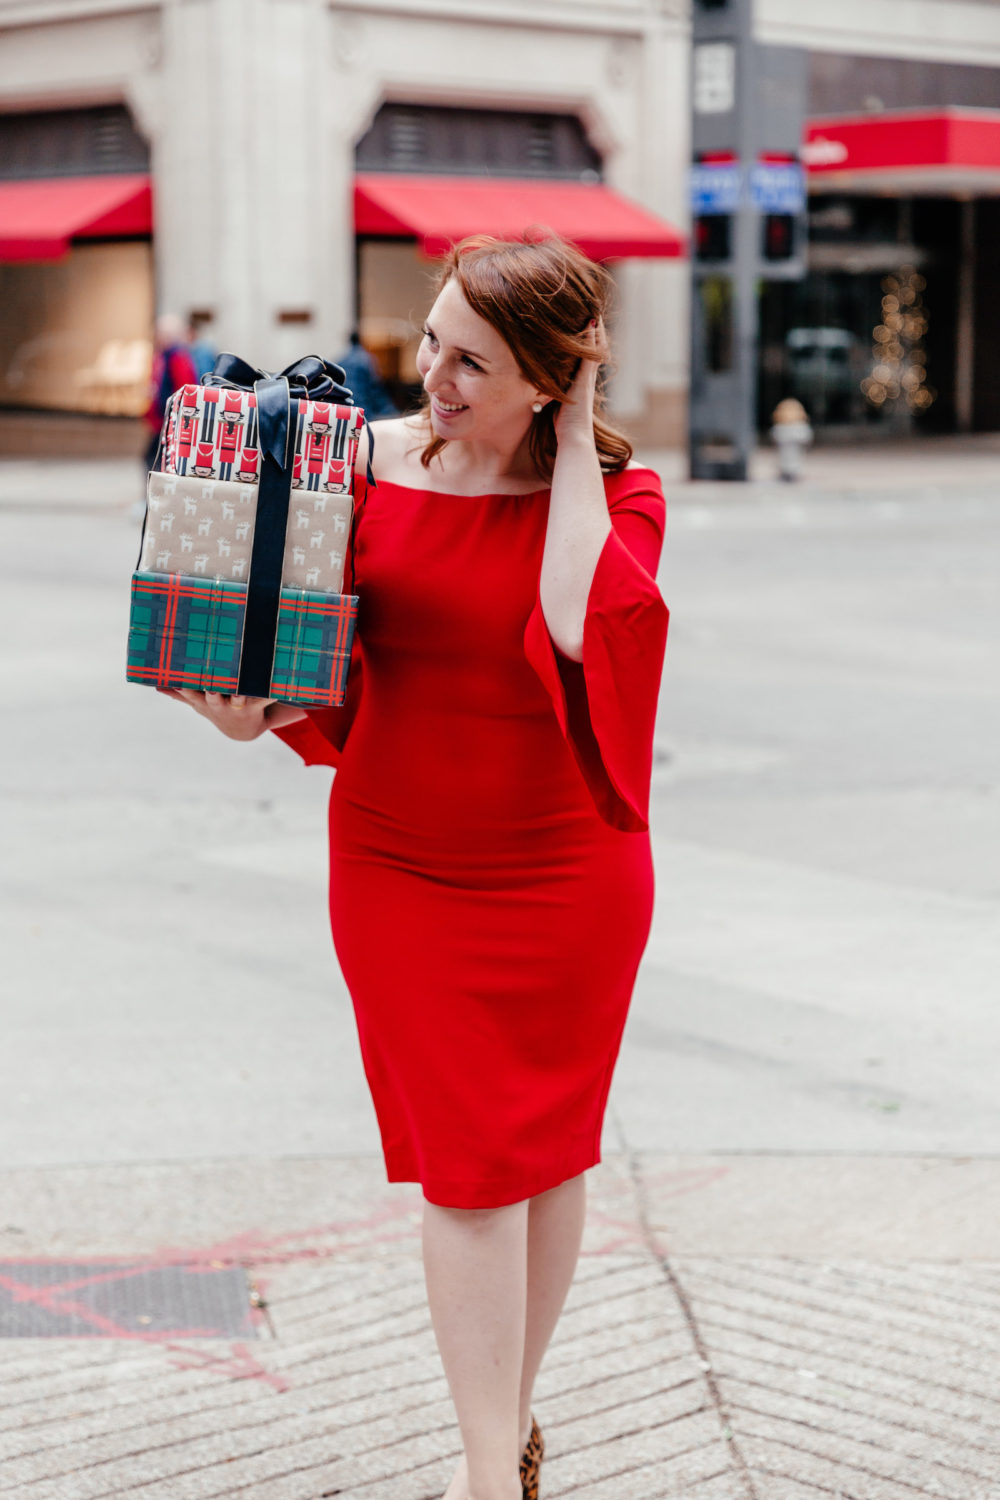 What to Wear to an Office Holiday Party | What to Wear to a Work Holiday Party | Cocktail Holiday Attire via Dallas fashion blogger Glitter & Spice